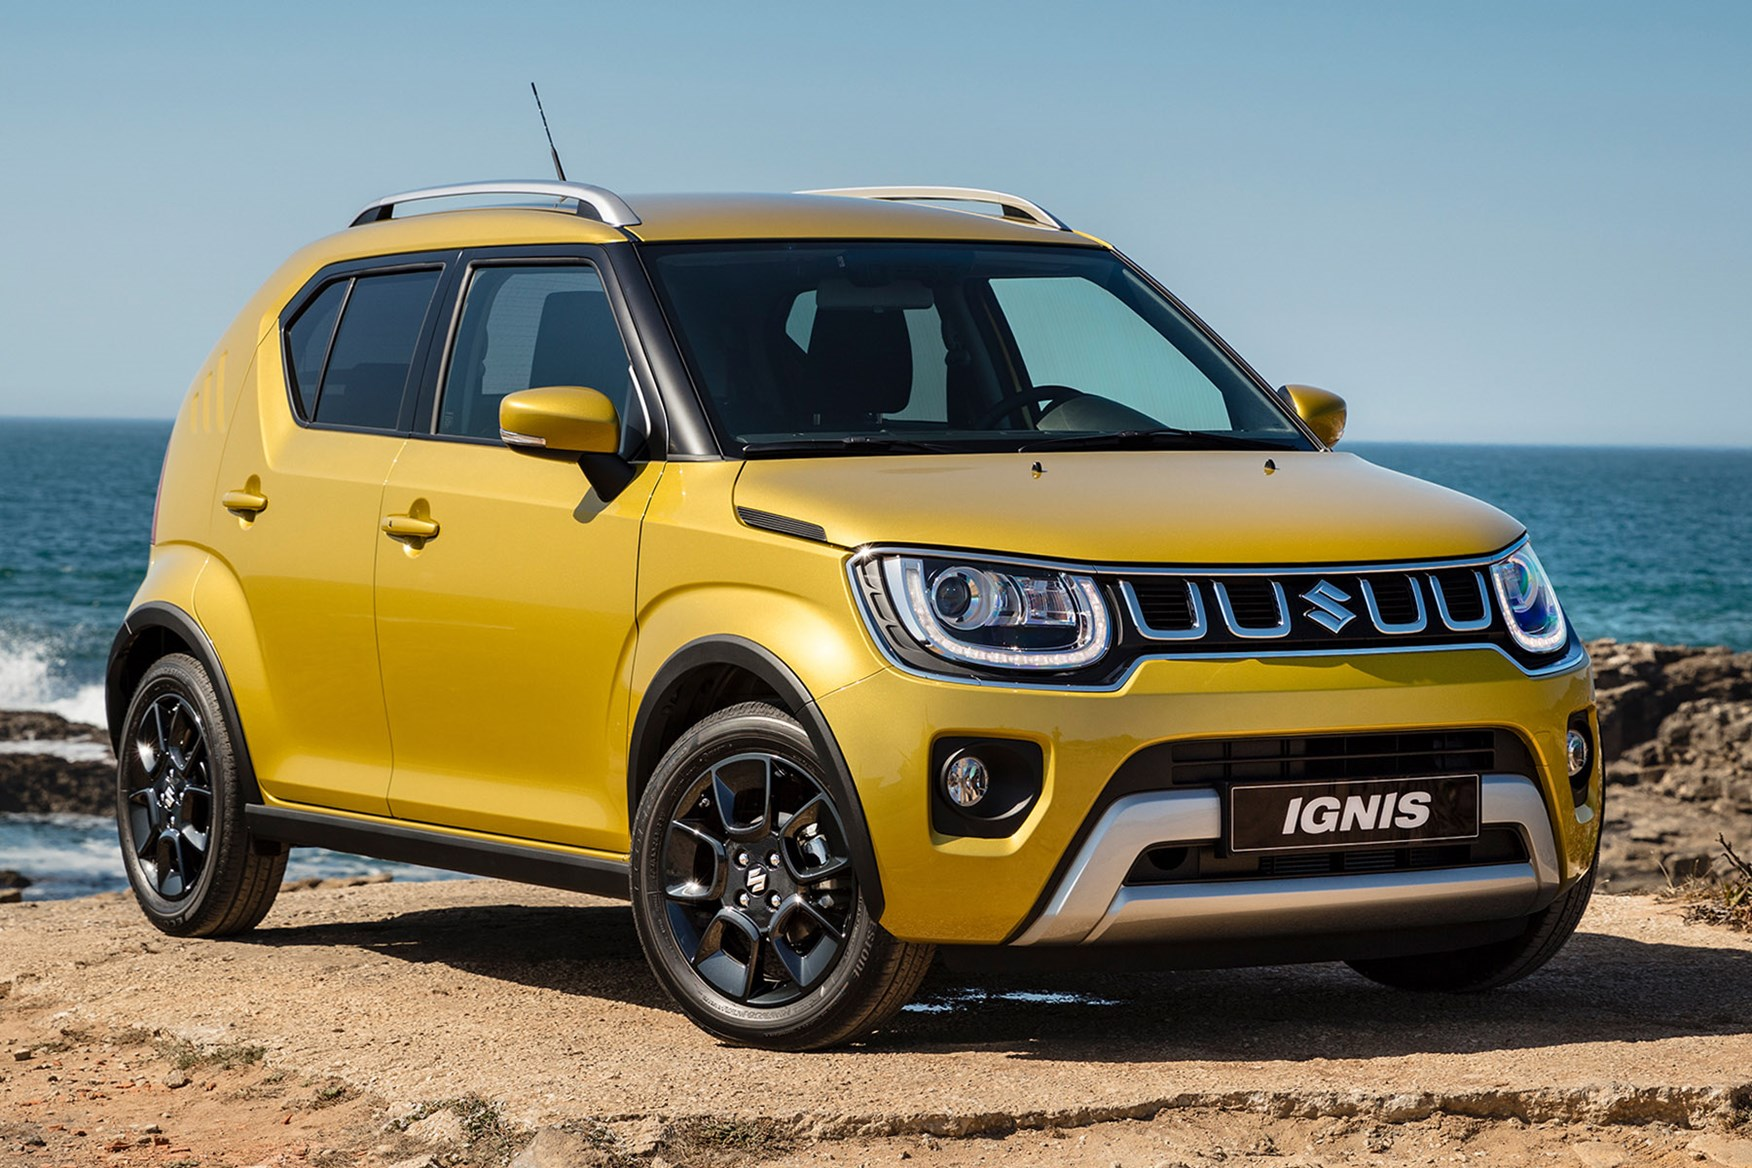 Suzuki vehicles are back in the Nigerian market, by CFAO